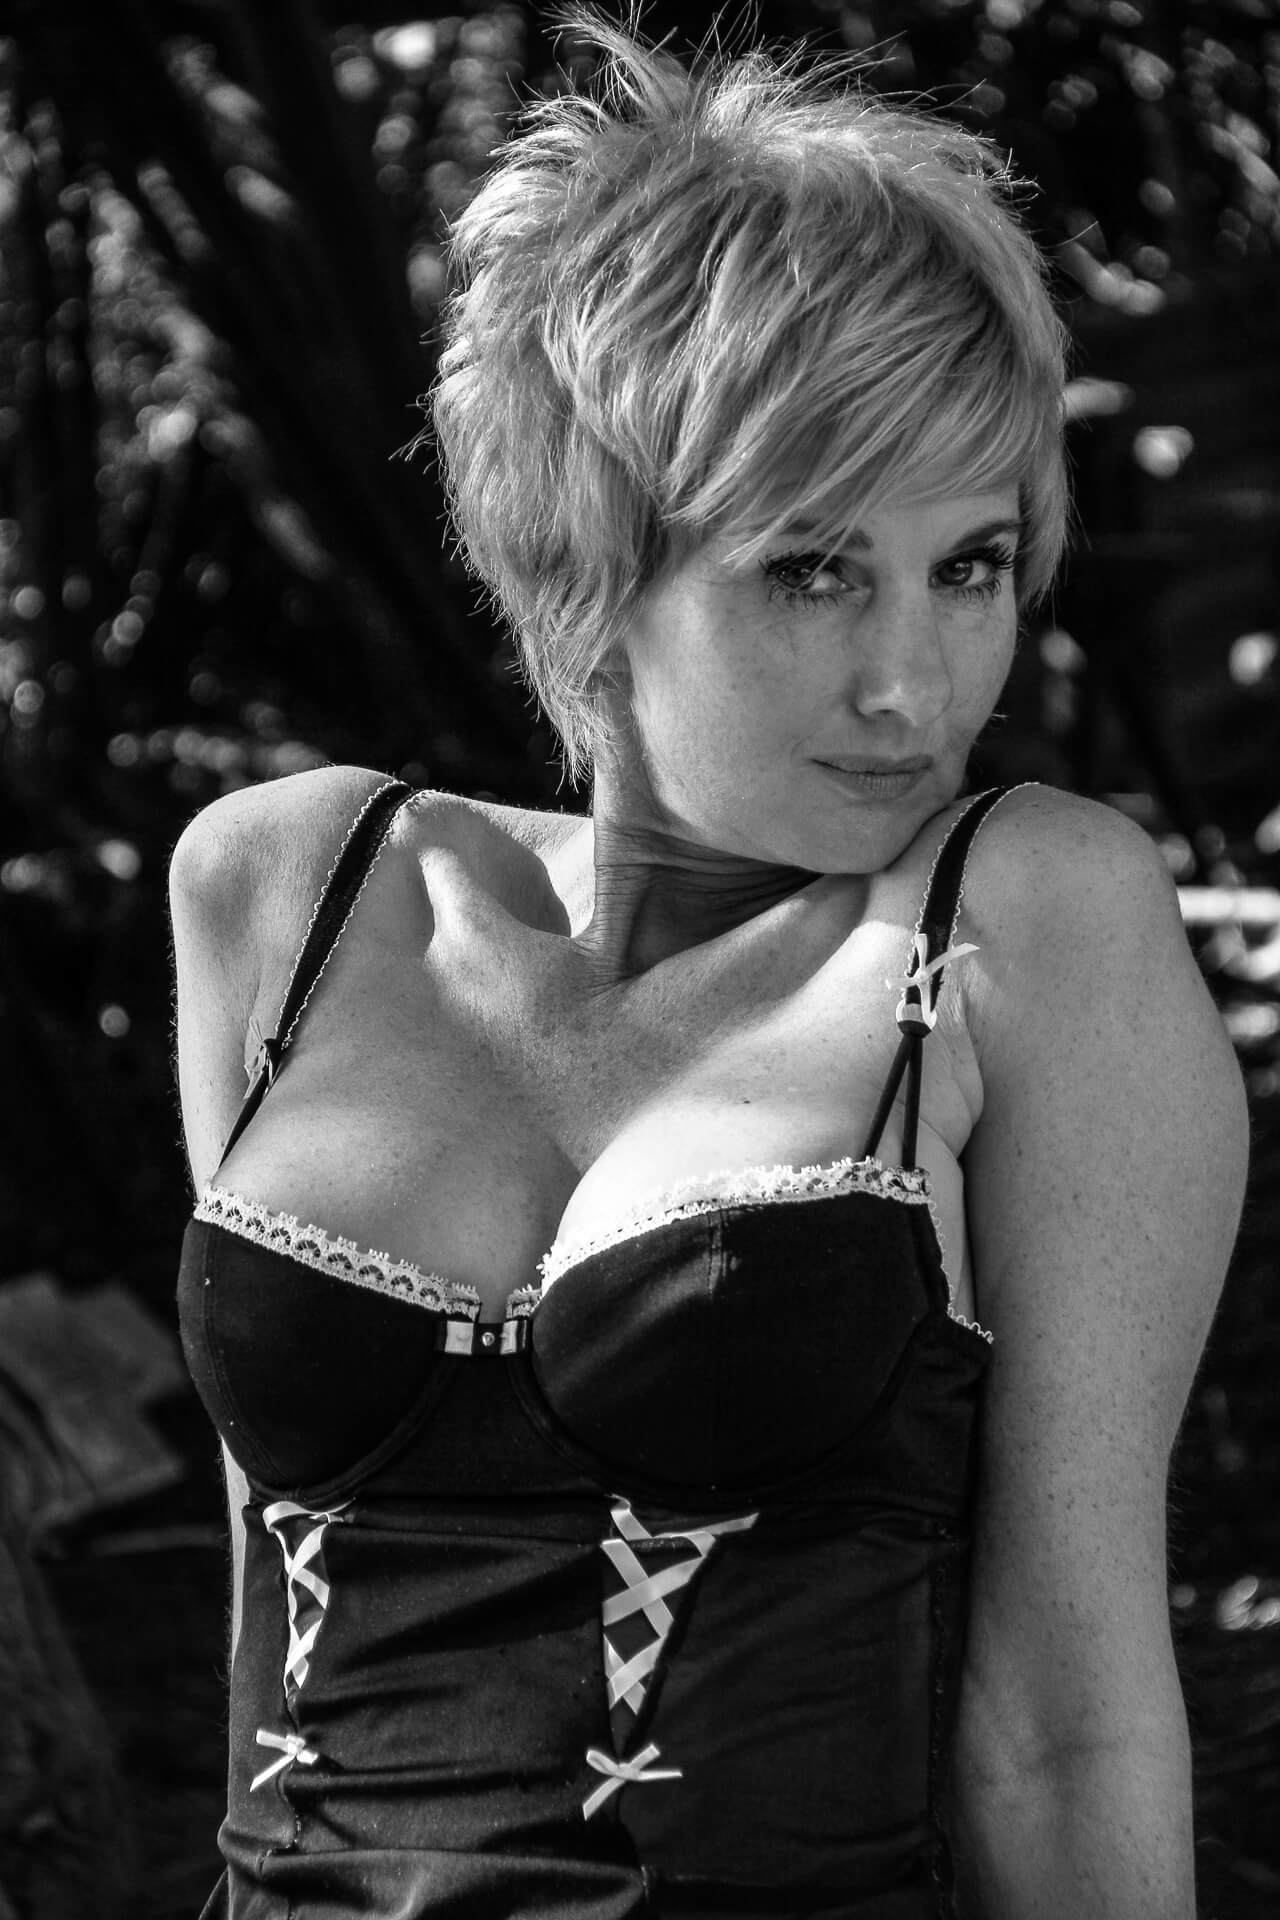 A black & white image of Rebbeca. She wears a black corset (with white edging) which shows off her ample chest. In this waist up image her body half faces the camera with her head (sporting a relatively short spiky hair cut) turned to her left. Her eyes though look provocatively directly at the camera.